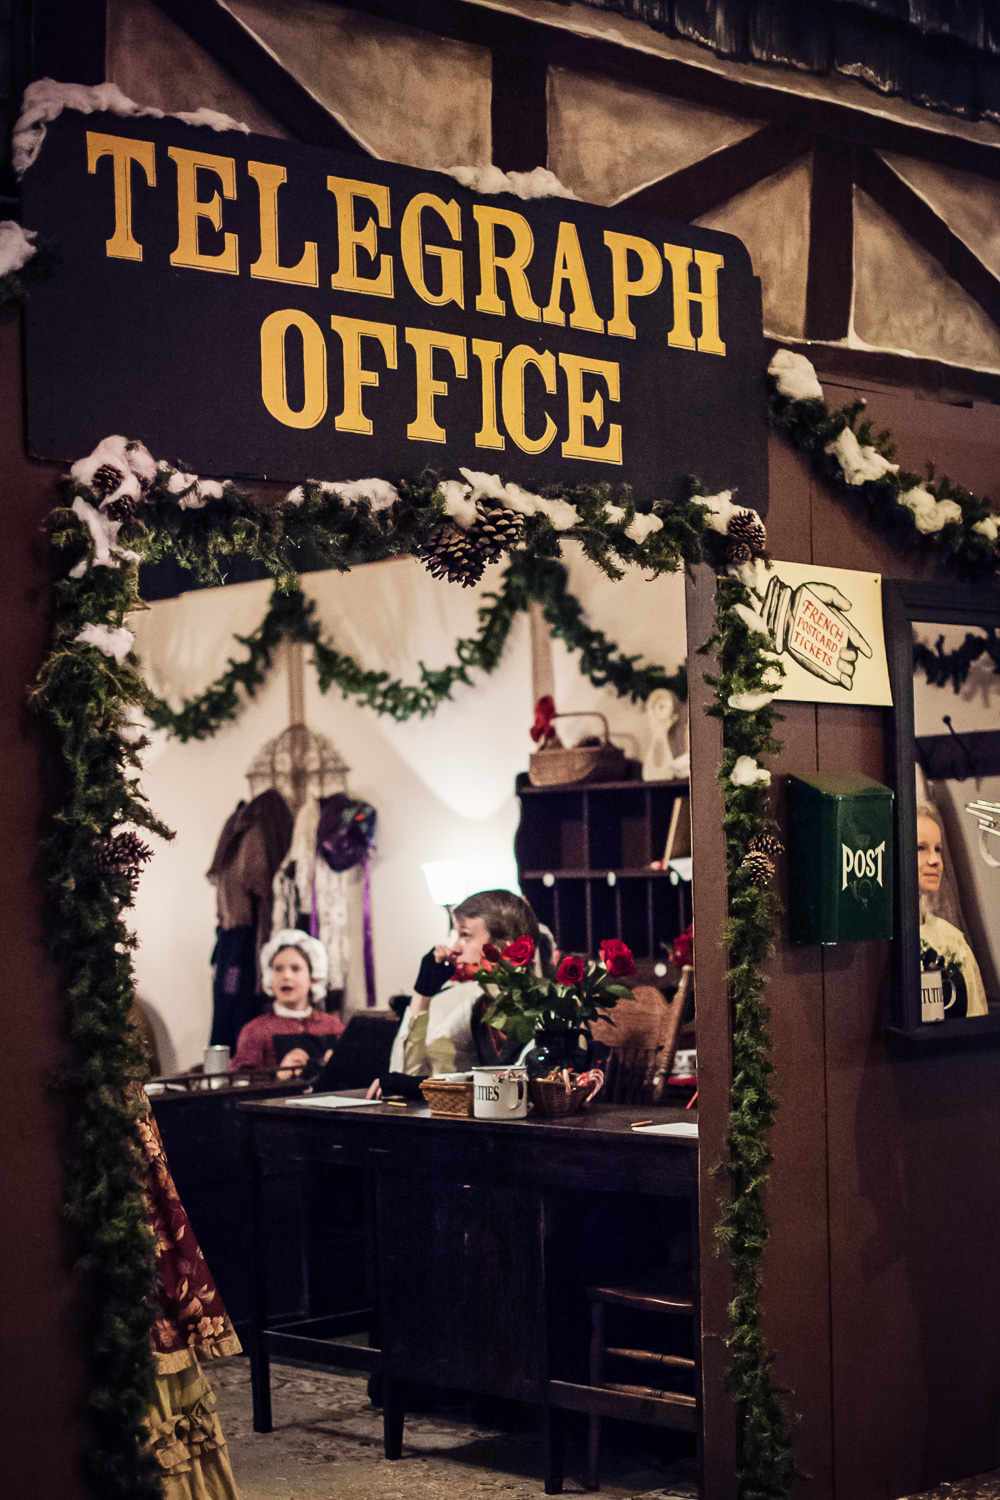 Telegraph Office at Great Dickens Christmas Fair // Ashley Petersen Photo